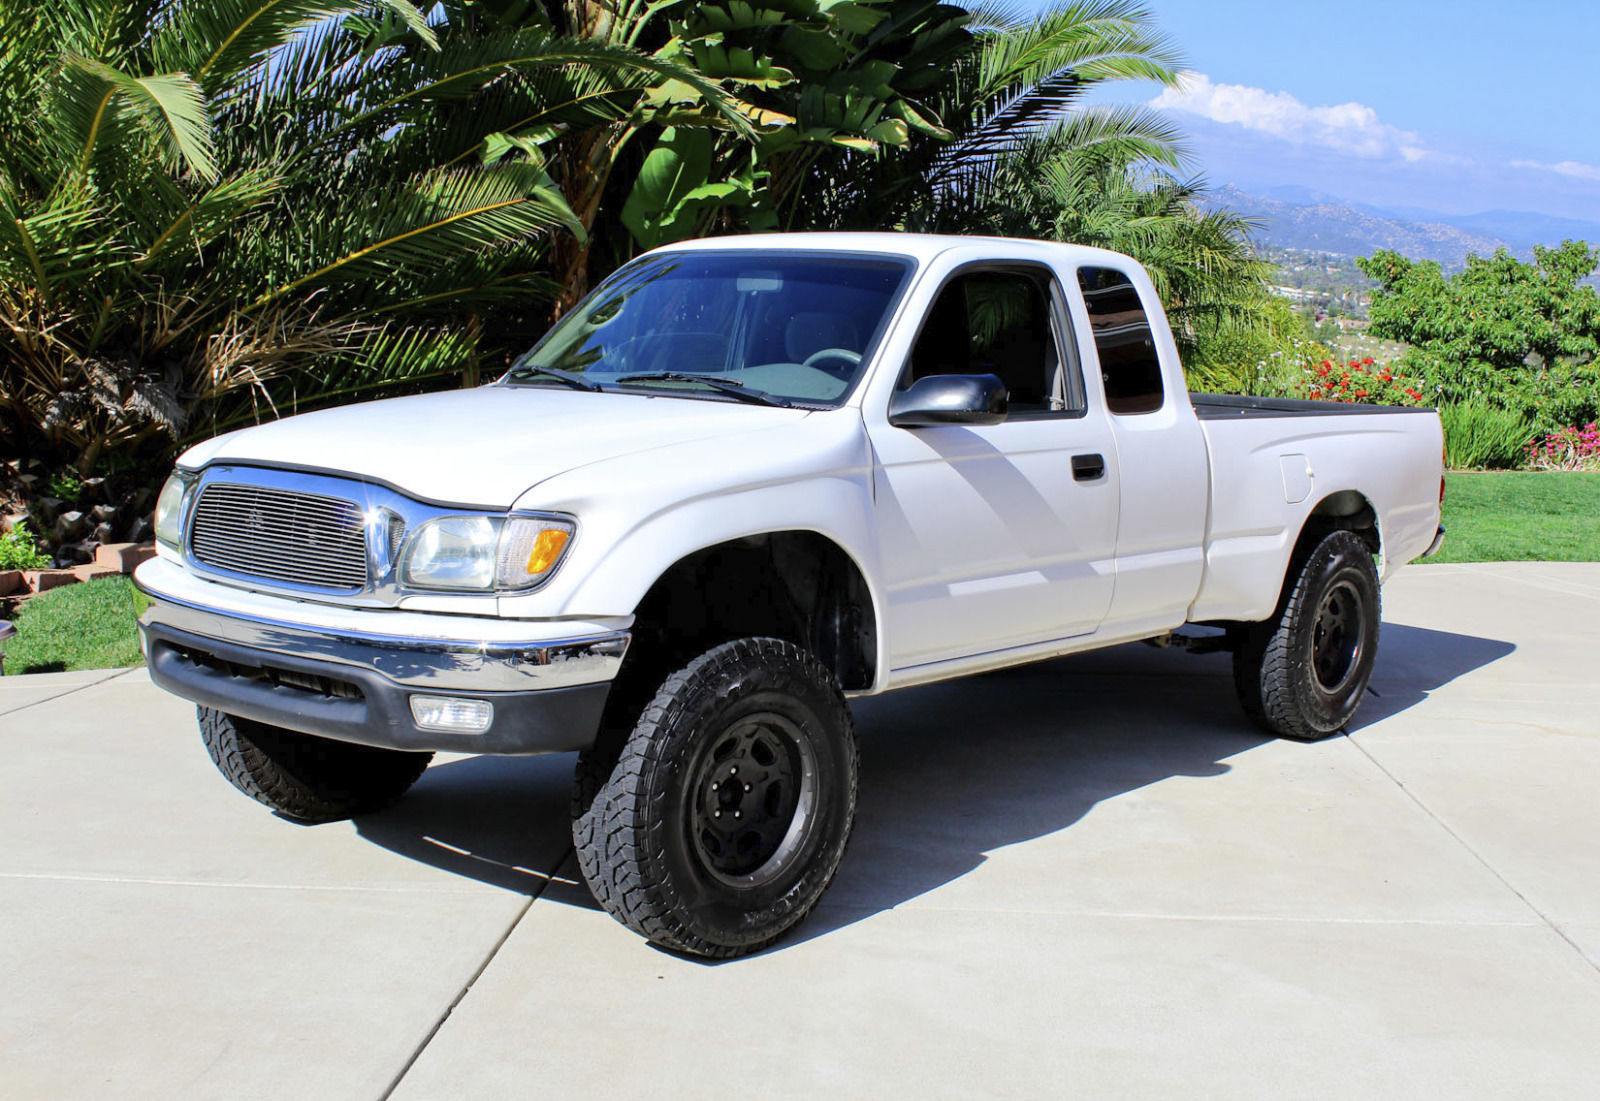 2004 Toyota Tacoma Lifted for sale